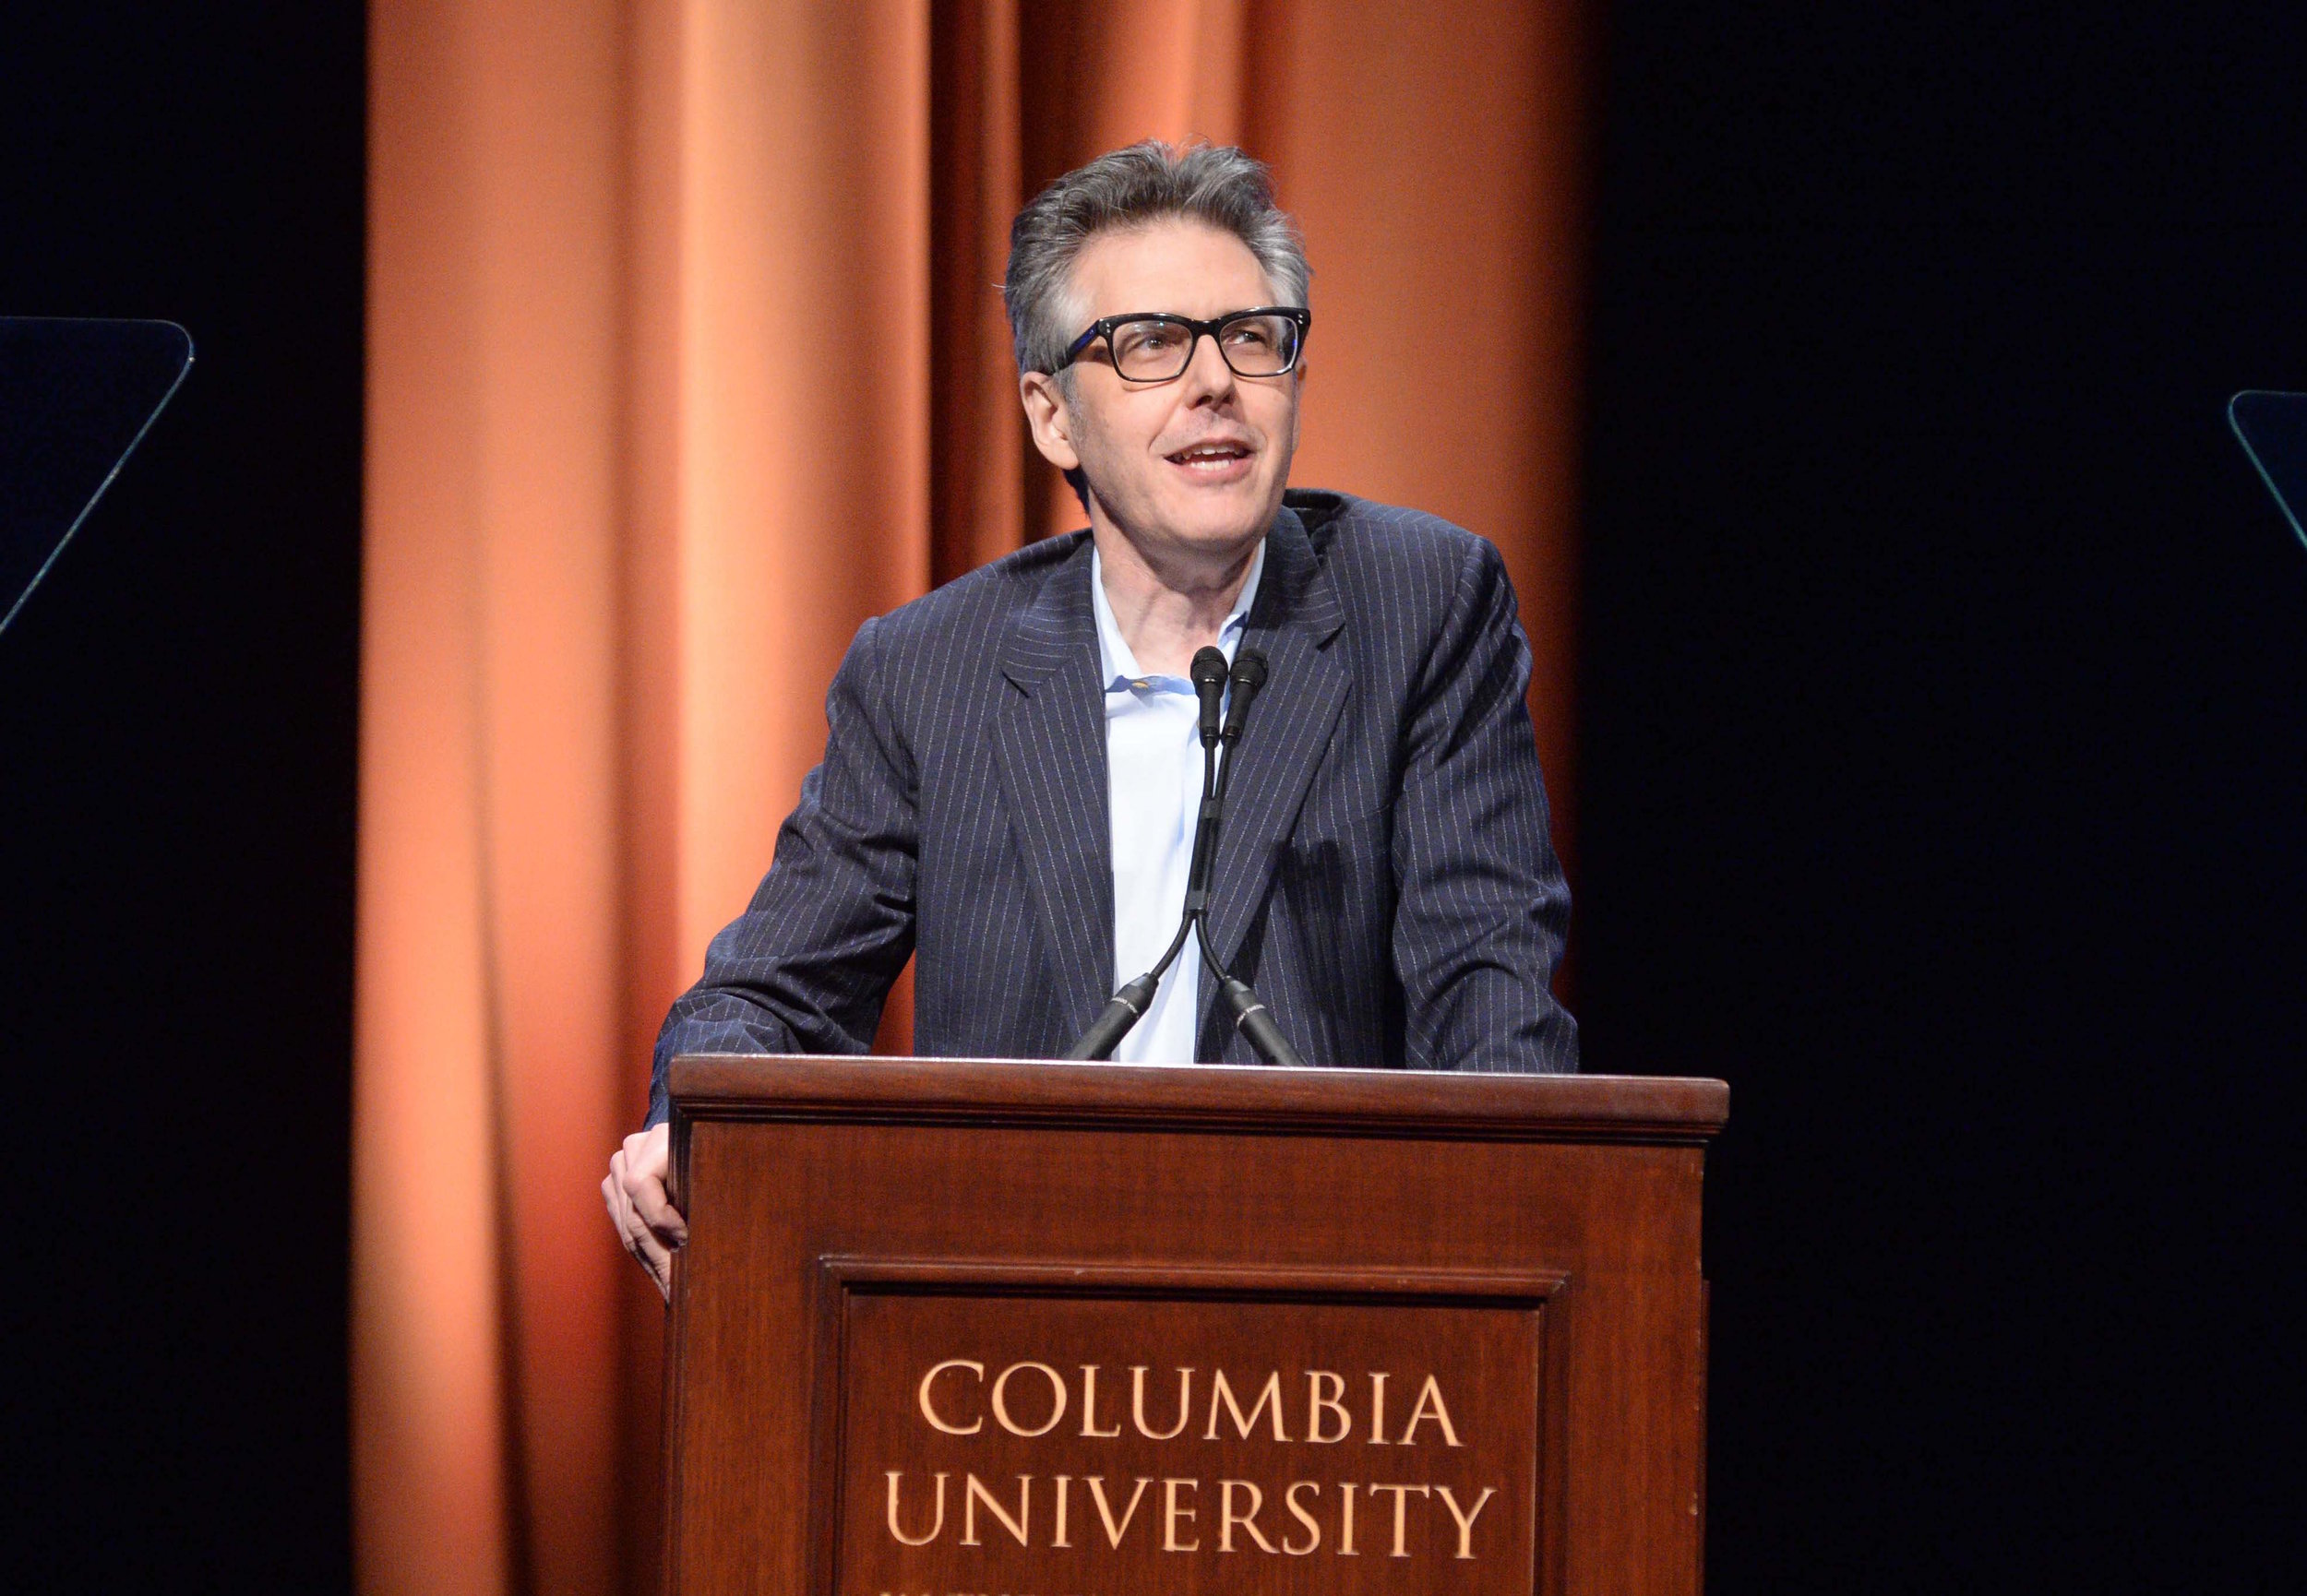 Ira Glass, distinguished honoree and past duPont-Columbia Award winner, speaking at the 2017 duPont-Columbia Awards.